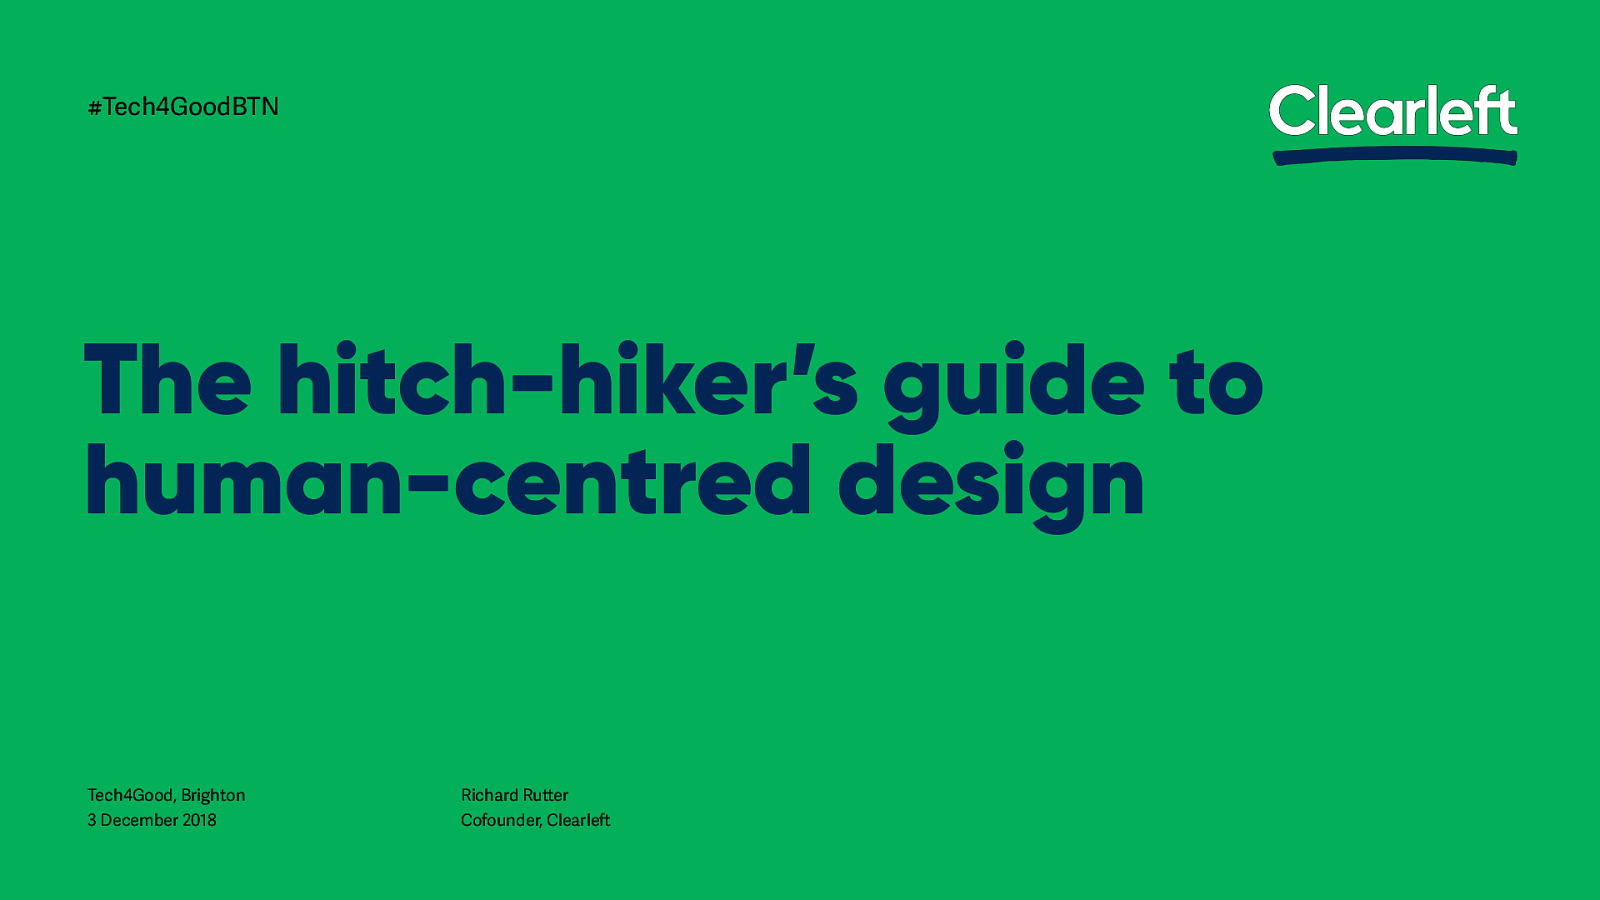 The Hitch-Hiker's Guide to Human-Centred Design